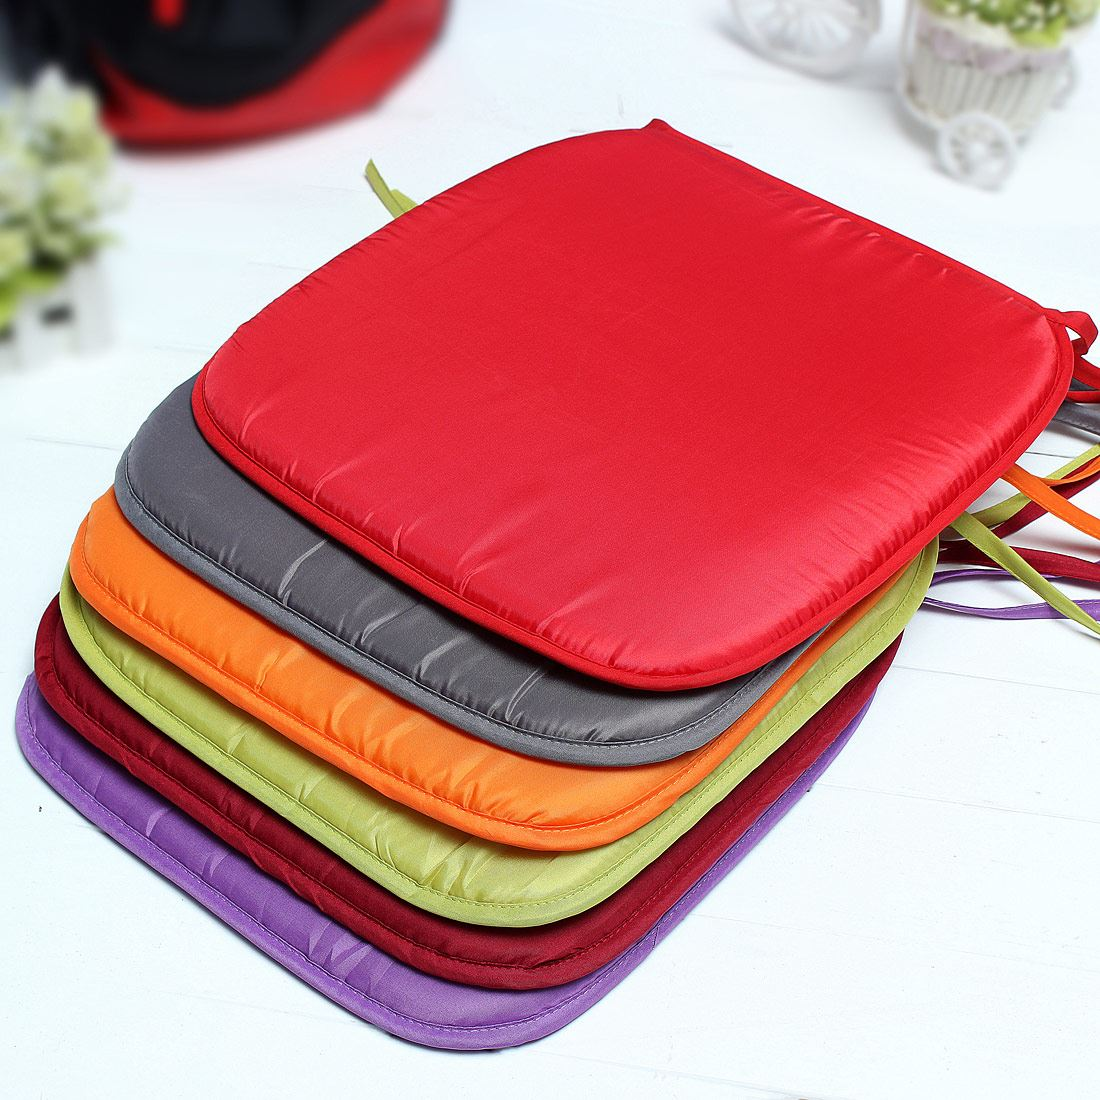 new soft comfort sit seat mat lumbar pillow office chair car seat cushion bolster buttocks